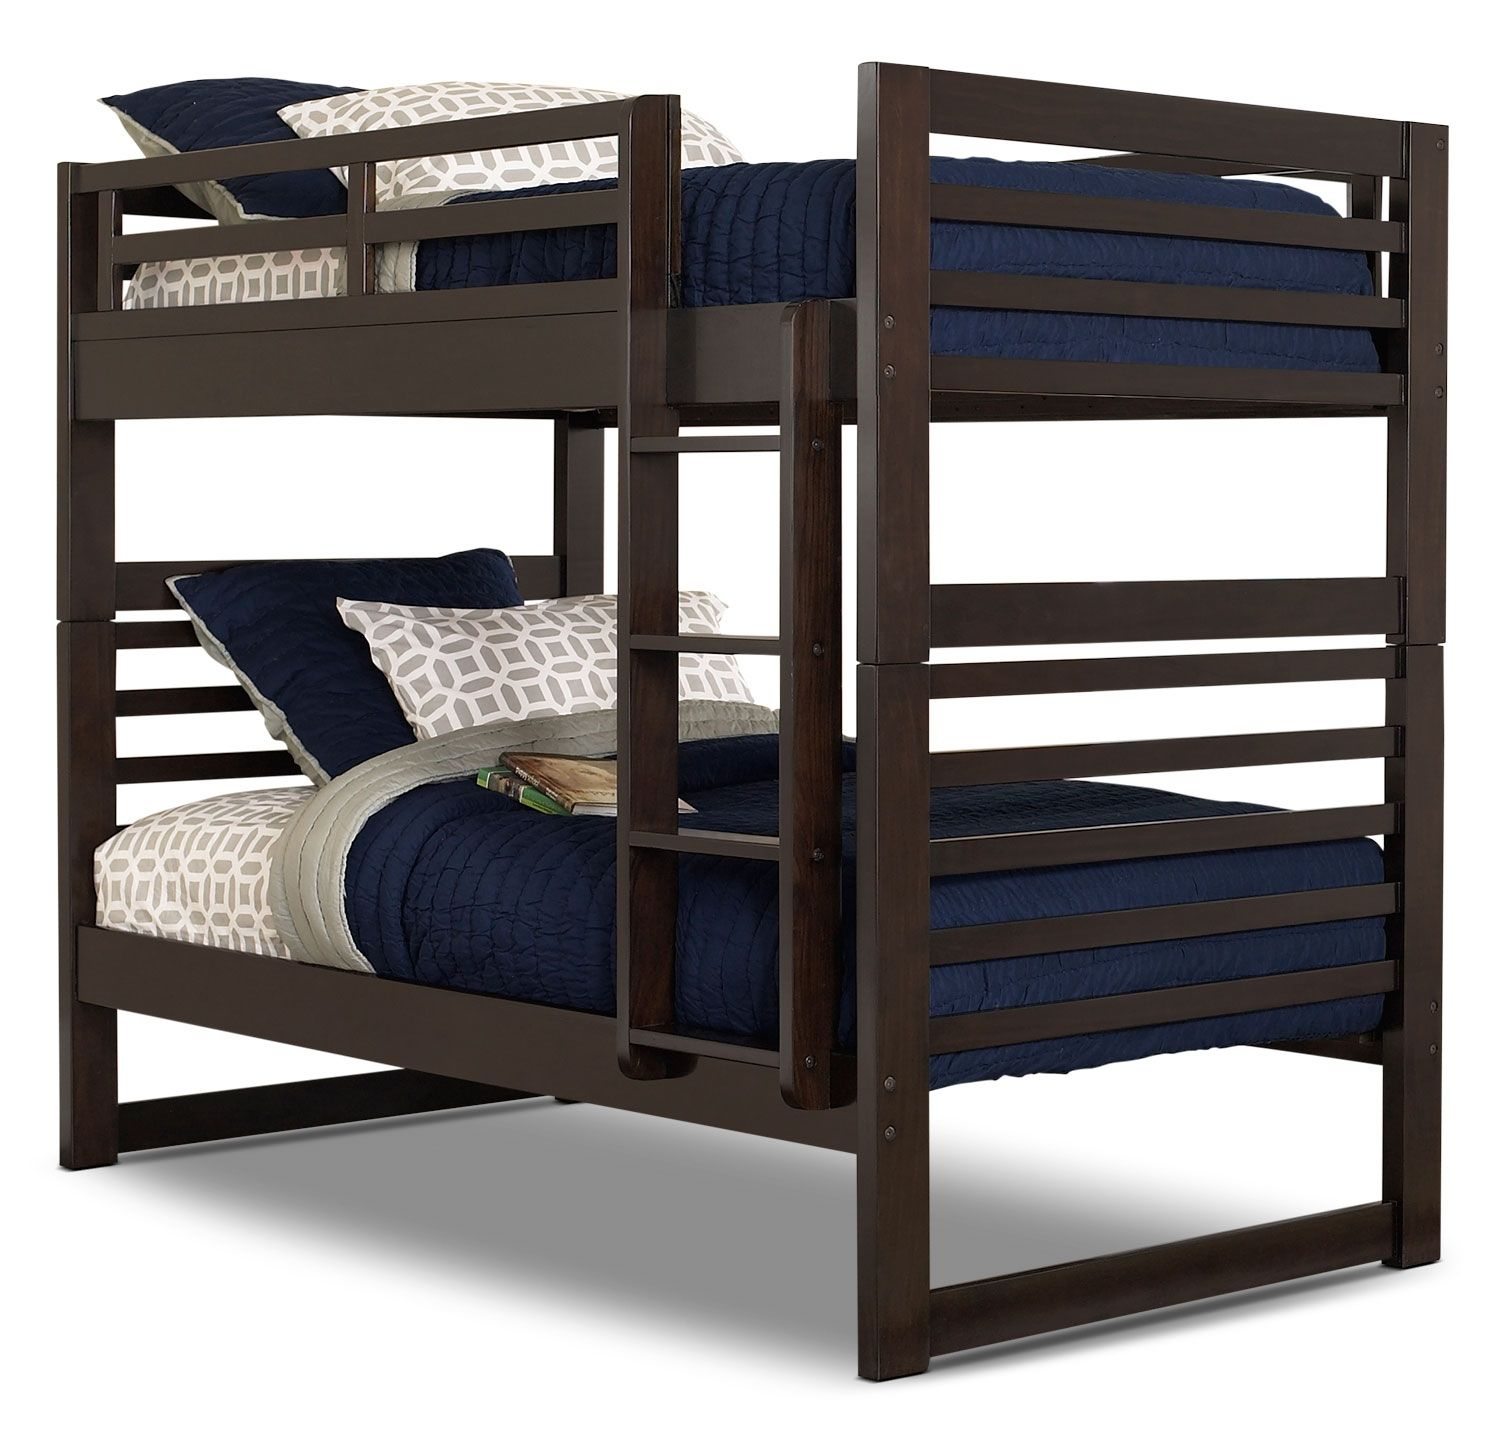 Loft bed with slide and desk  Chadwick TwinTwin Bunk Bed u Espresso  Bunk beds  Pinterest